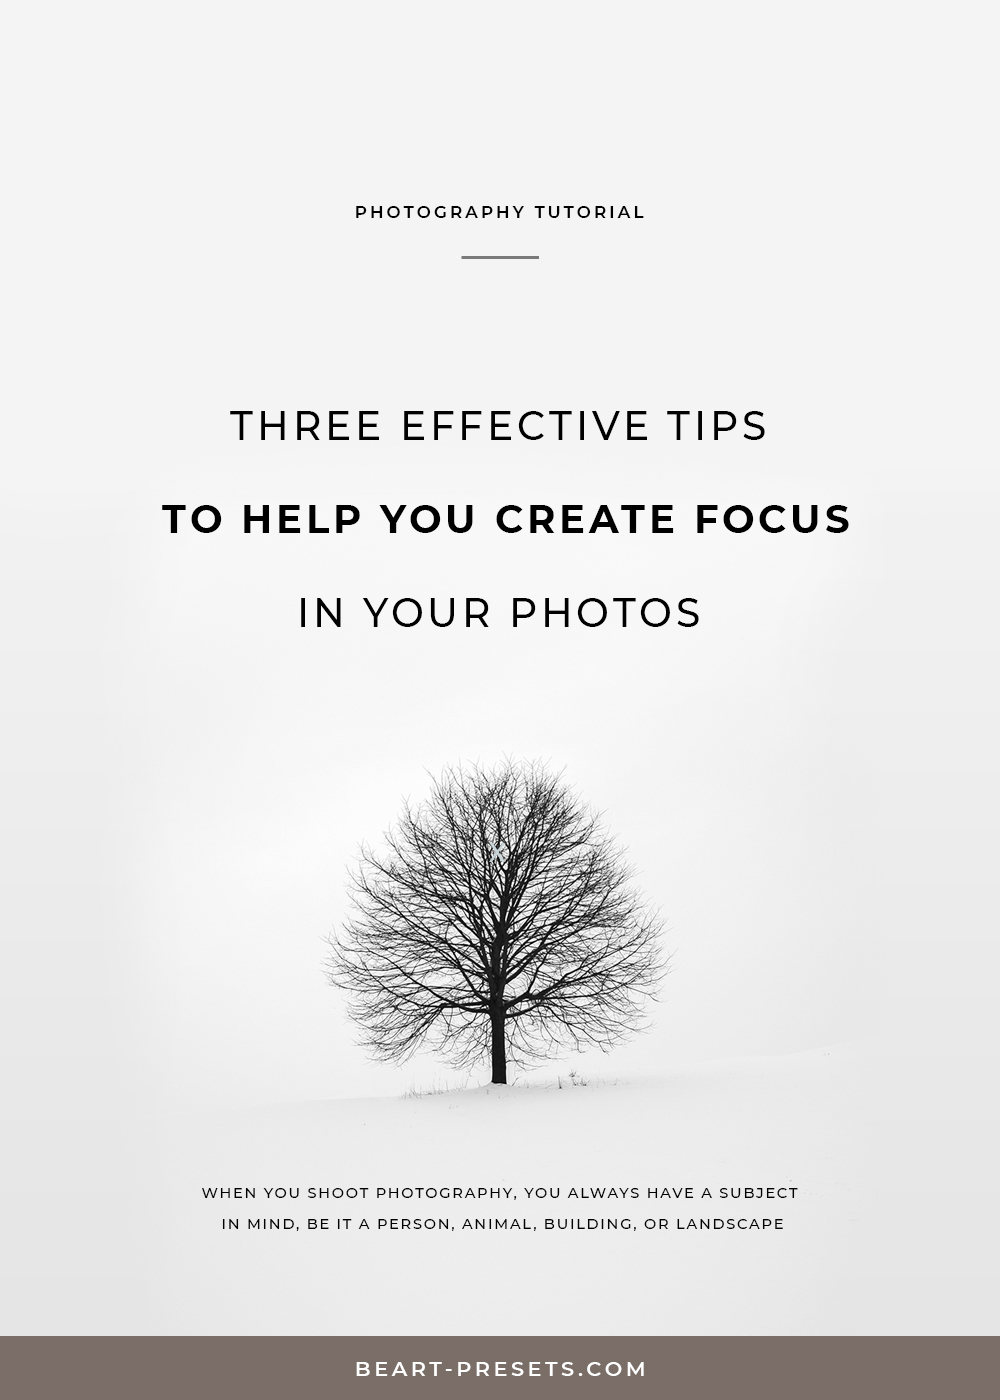 TIPS TO  HELP YOU CREATE FOCUS  IN YOUR PHOTOS